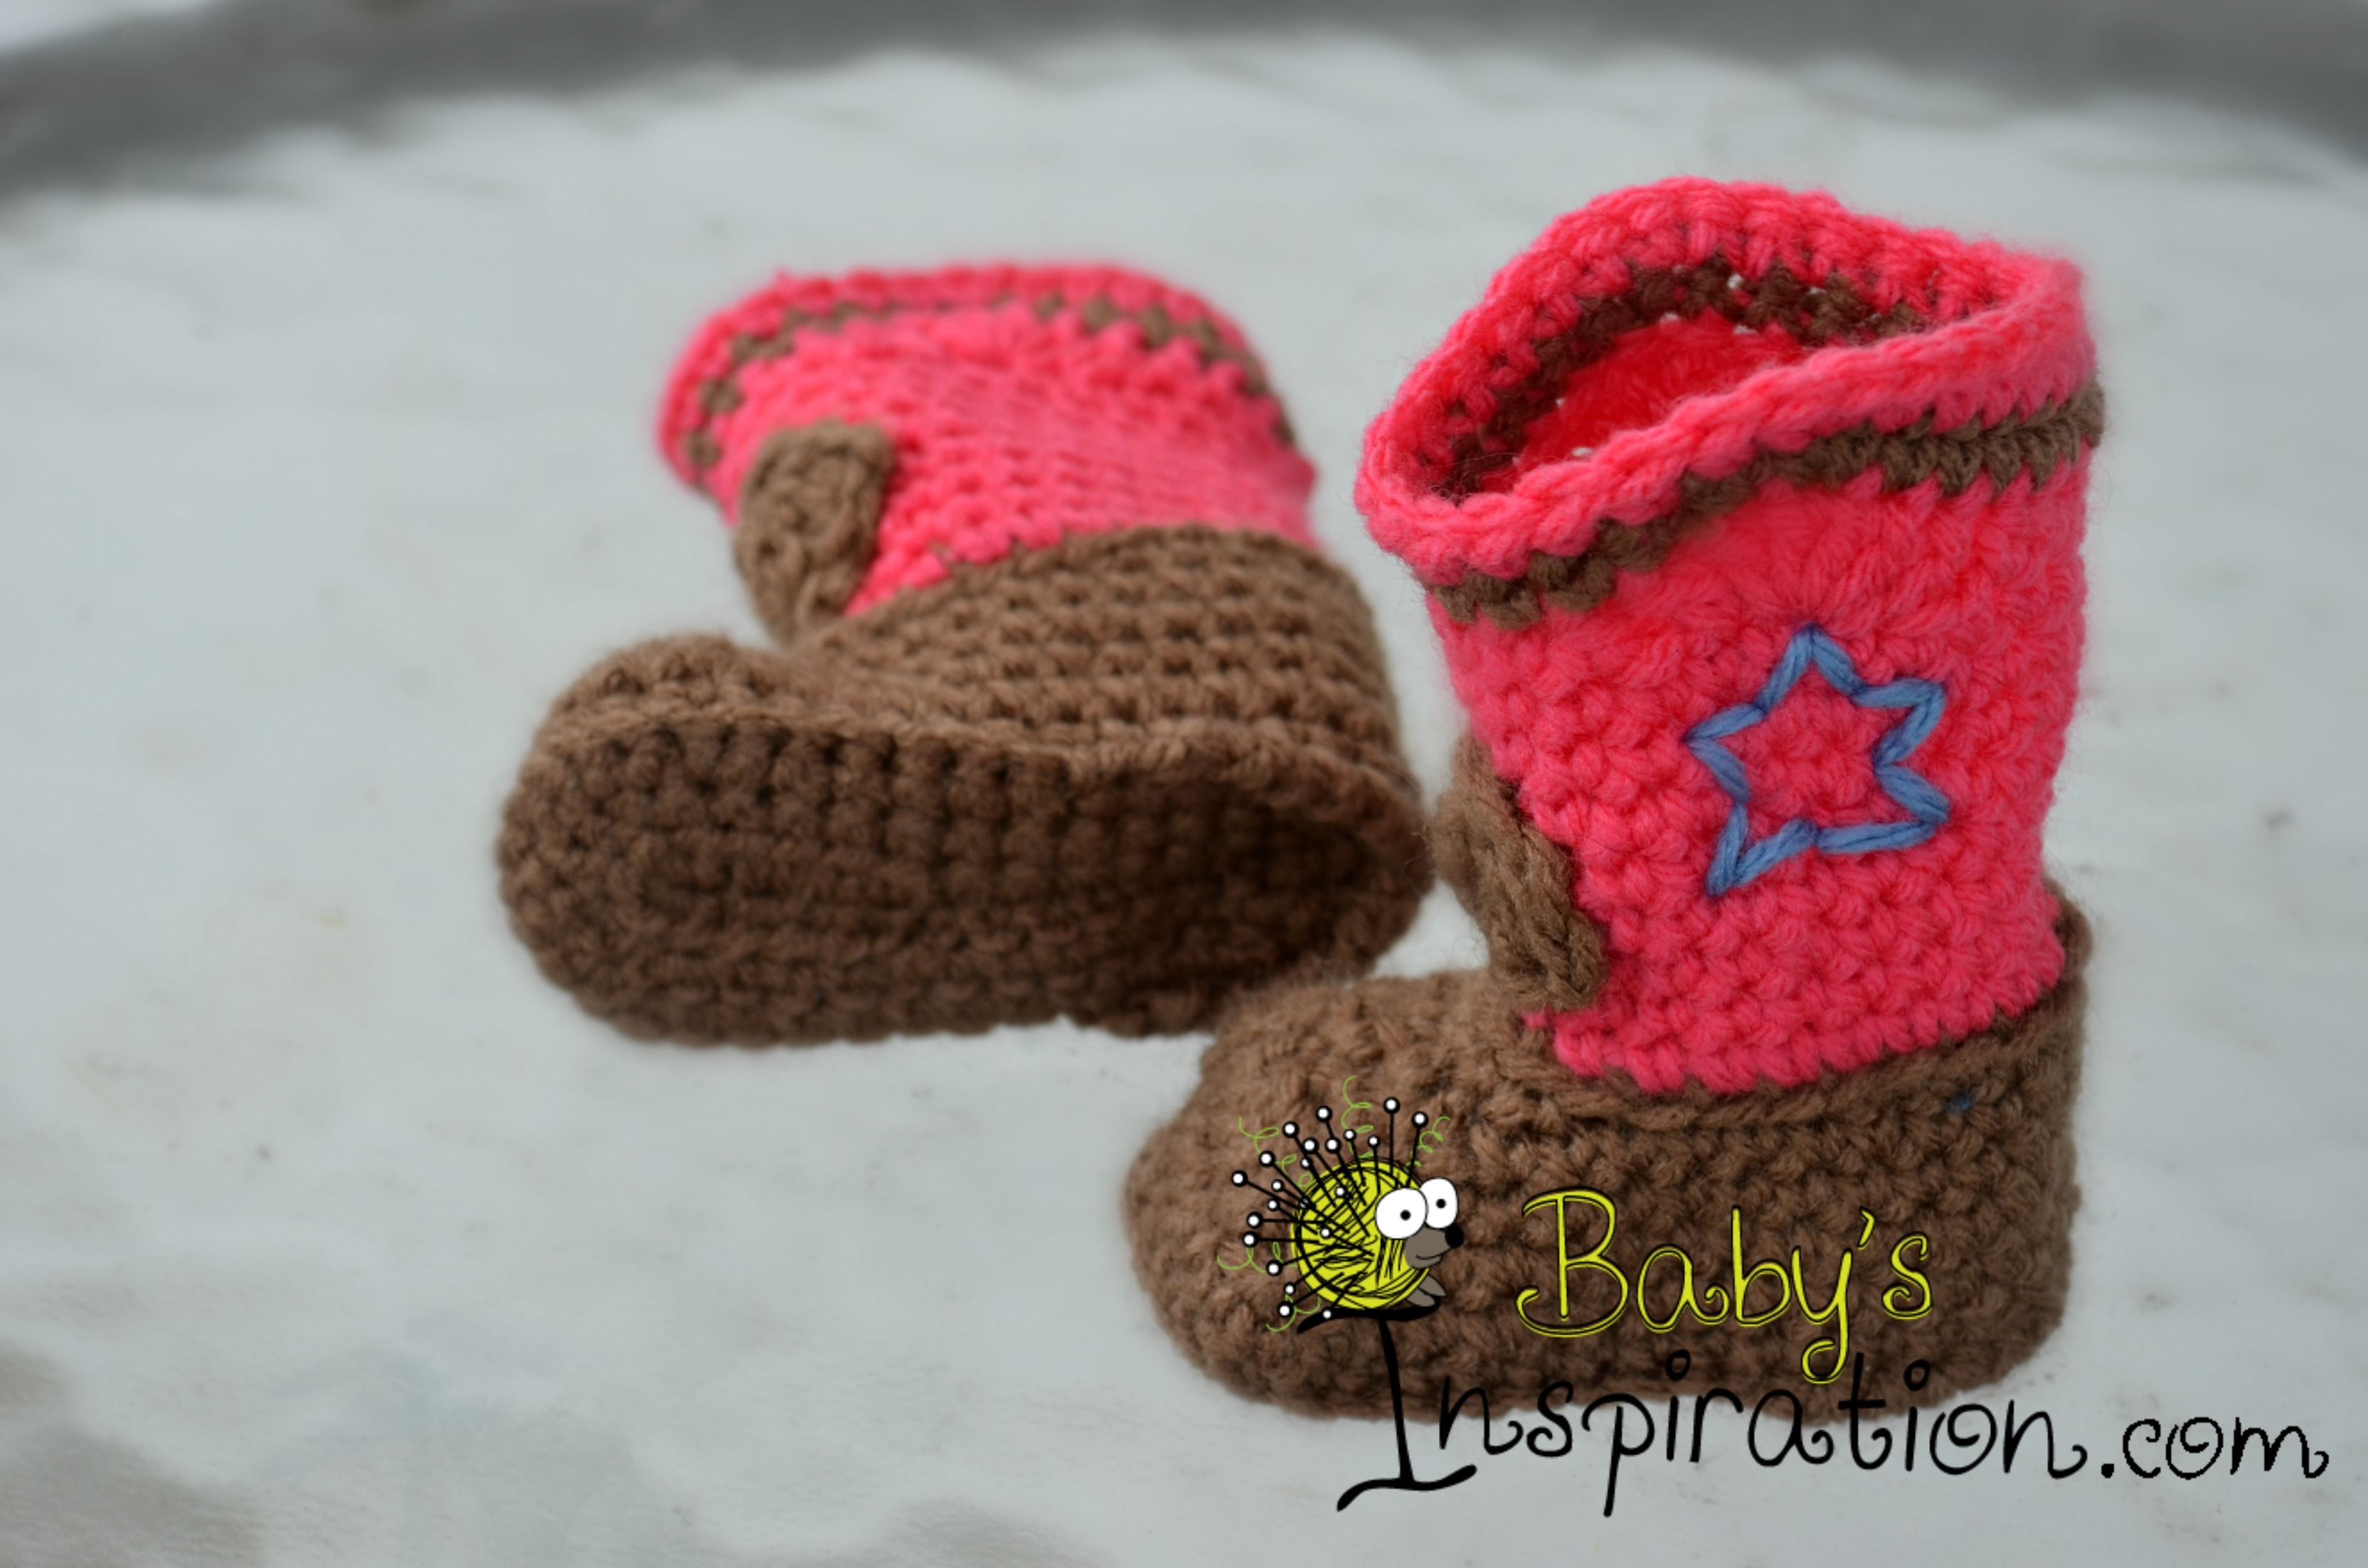 Crocheted Cowboy Or Cowgirl Boots Babys Inspiration Online